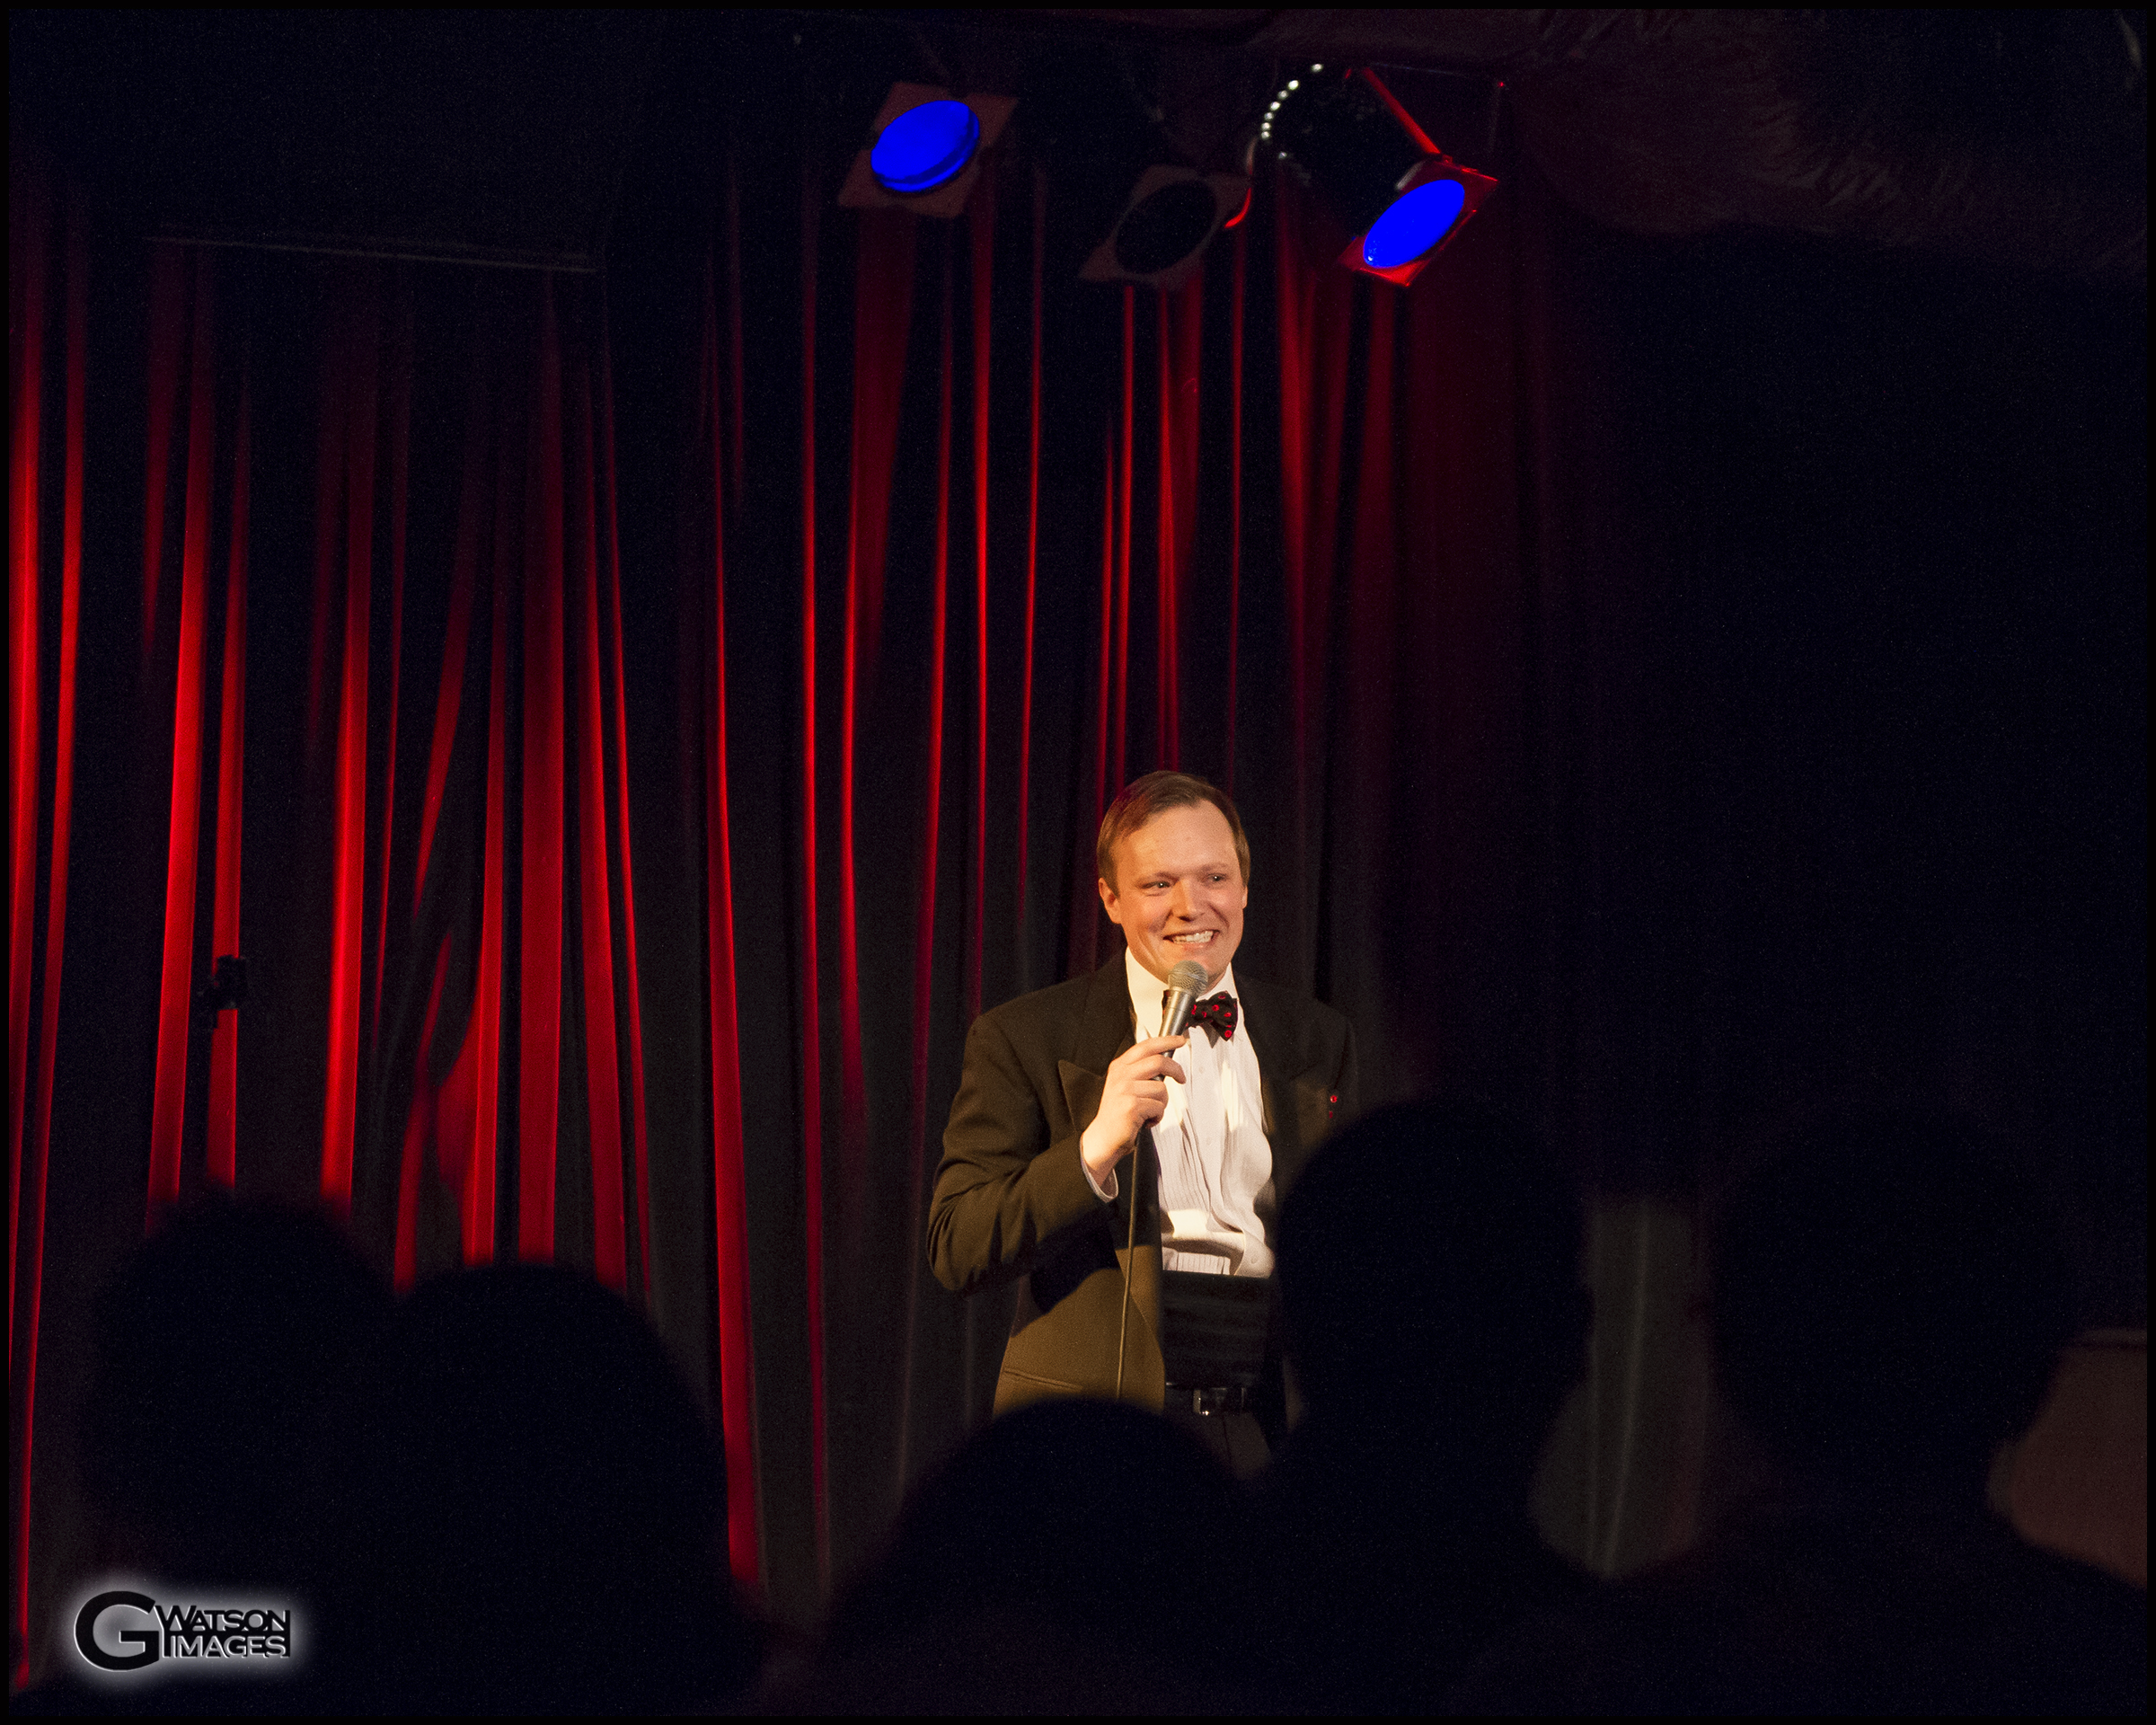 Edmund Birch hosts Michelle L\'amour\'s Old Time Strip Show   ©G.Watson Images